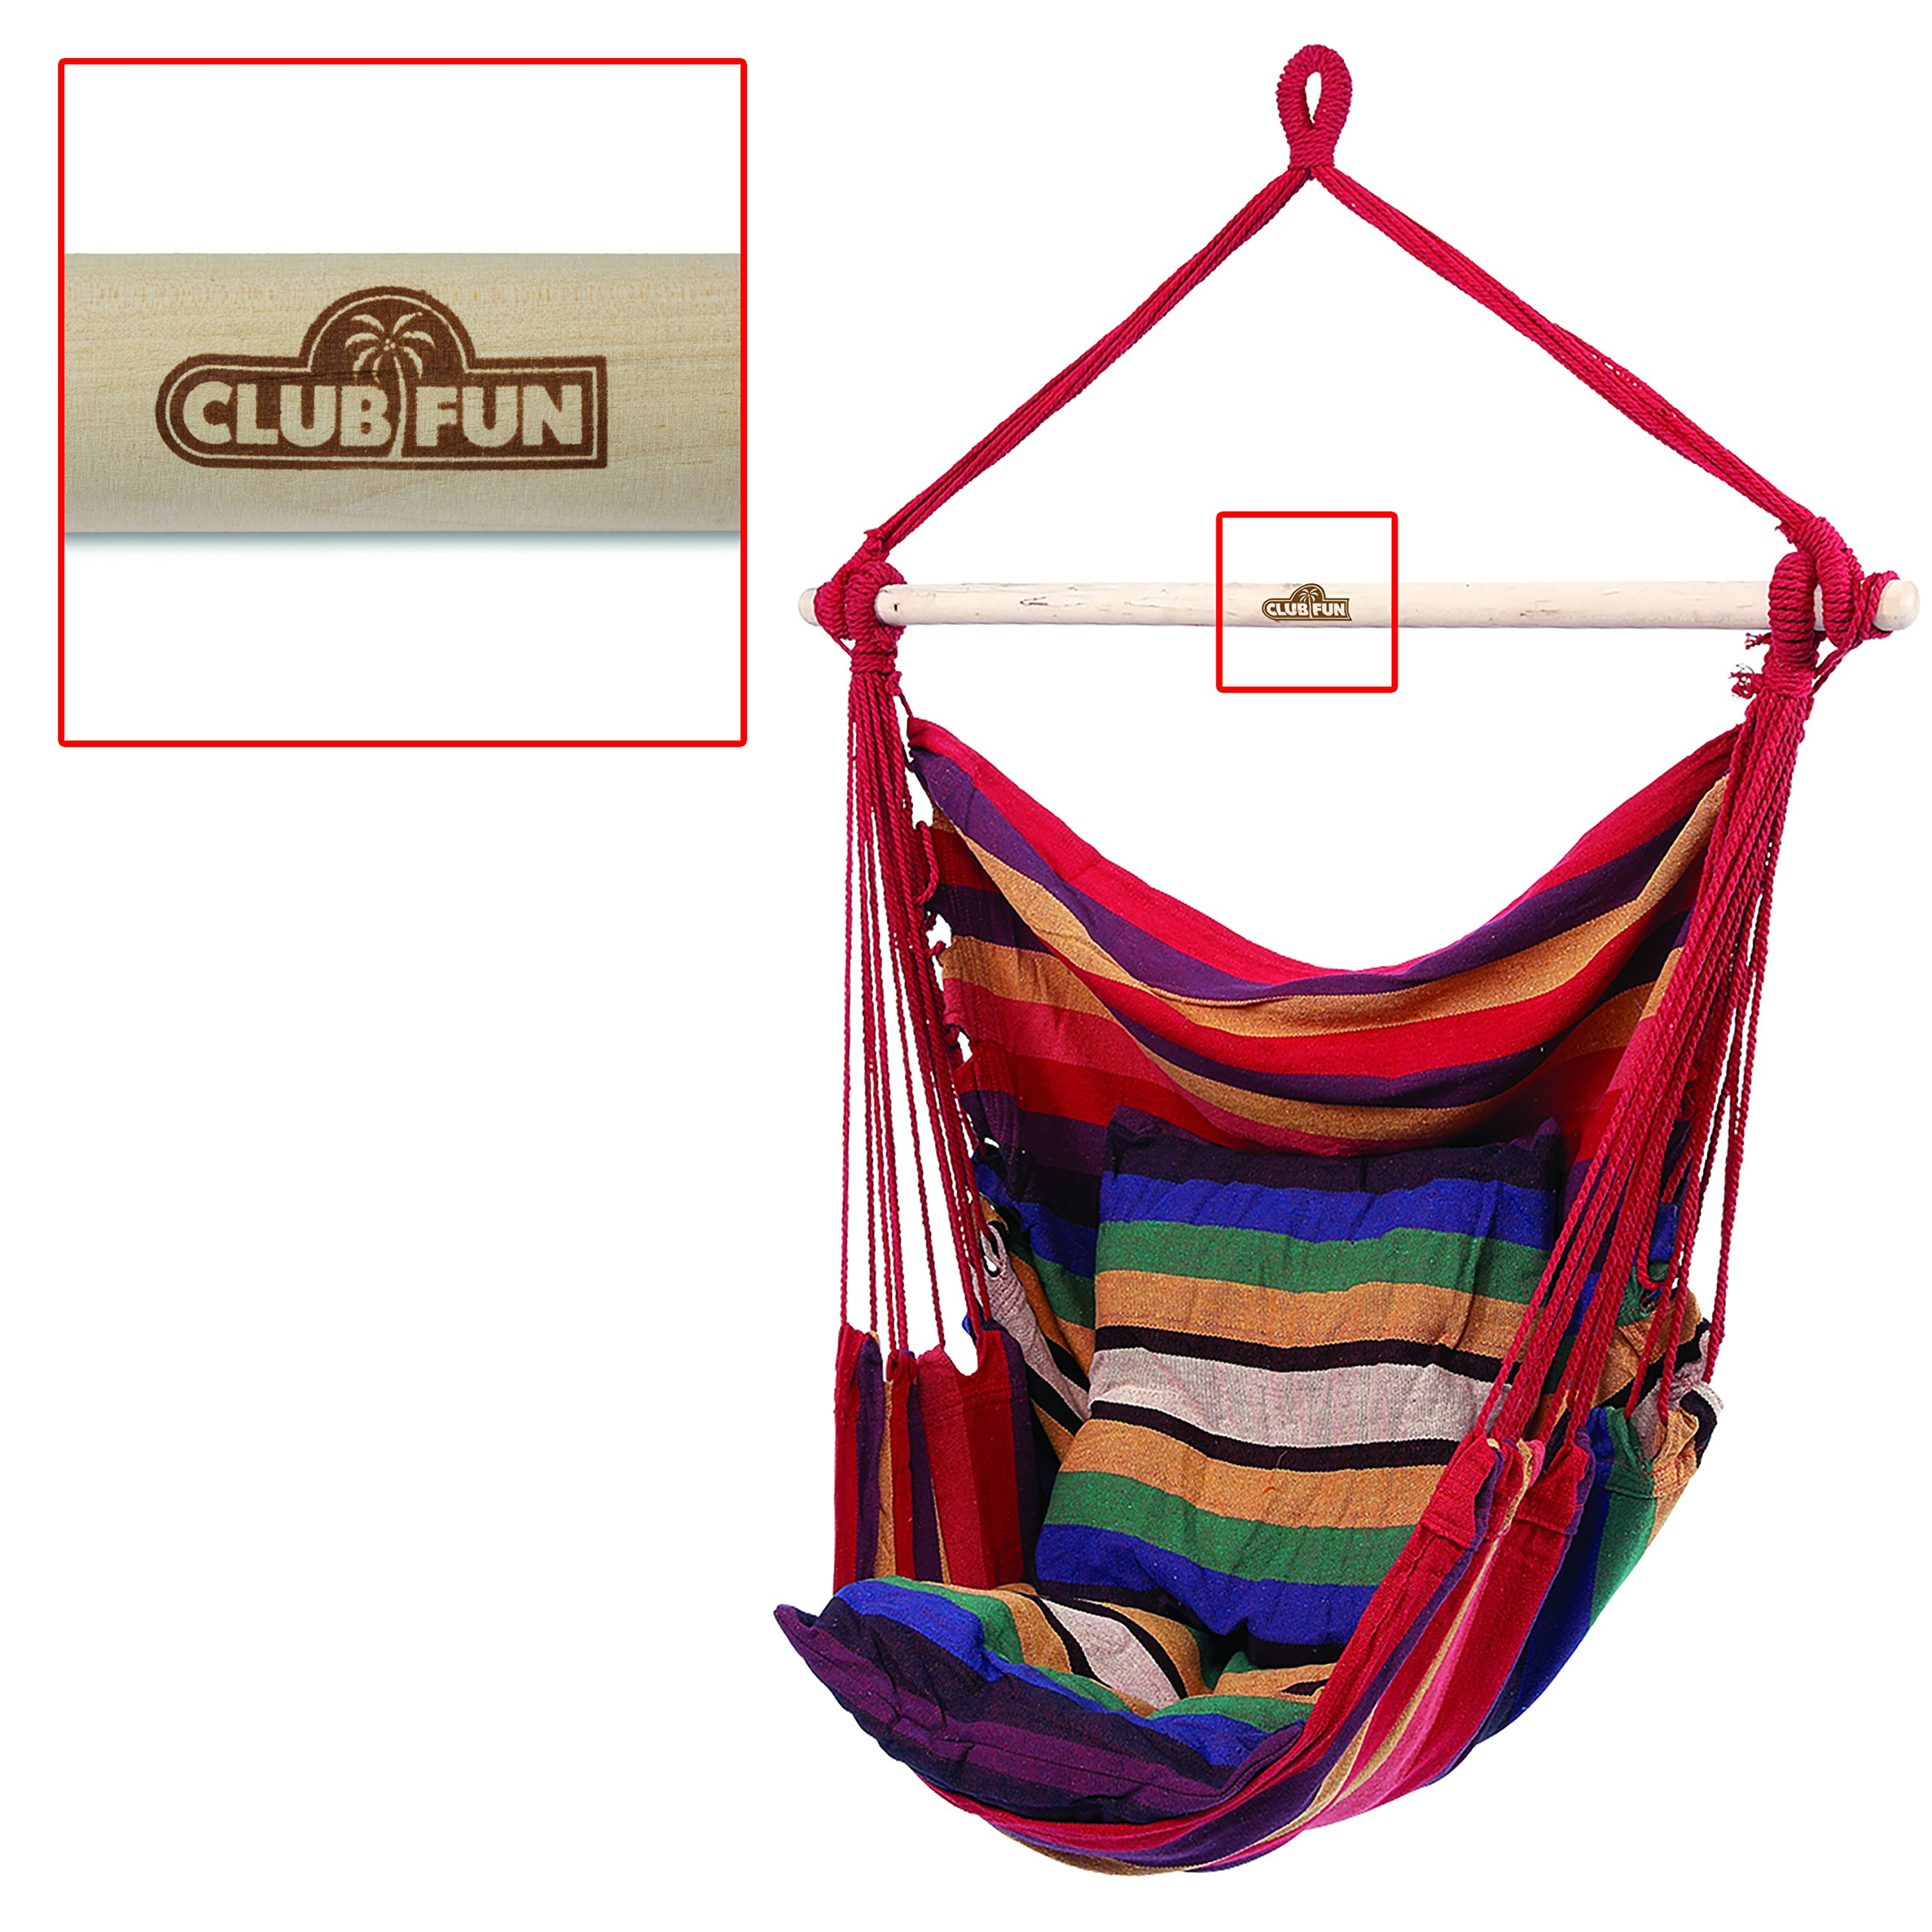 Club Fun The Original Hanging Hammock Rope Chair For Indoor Outdoor Kids and Adults 265 lbs Seating for Patio, Bedroom, Dorm, Porch, Tree In Red and Multi-Colored Stripes